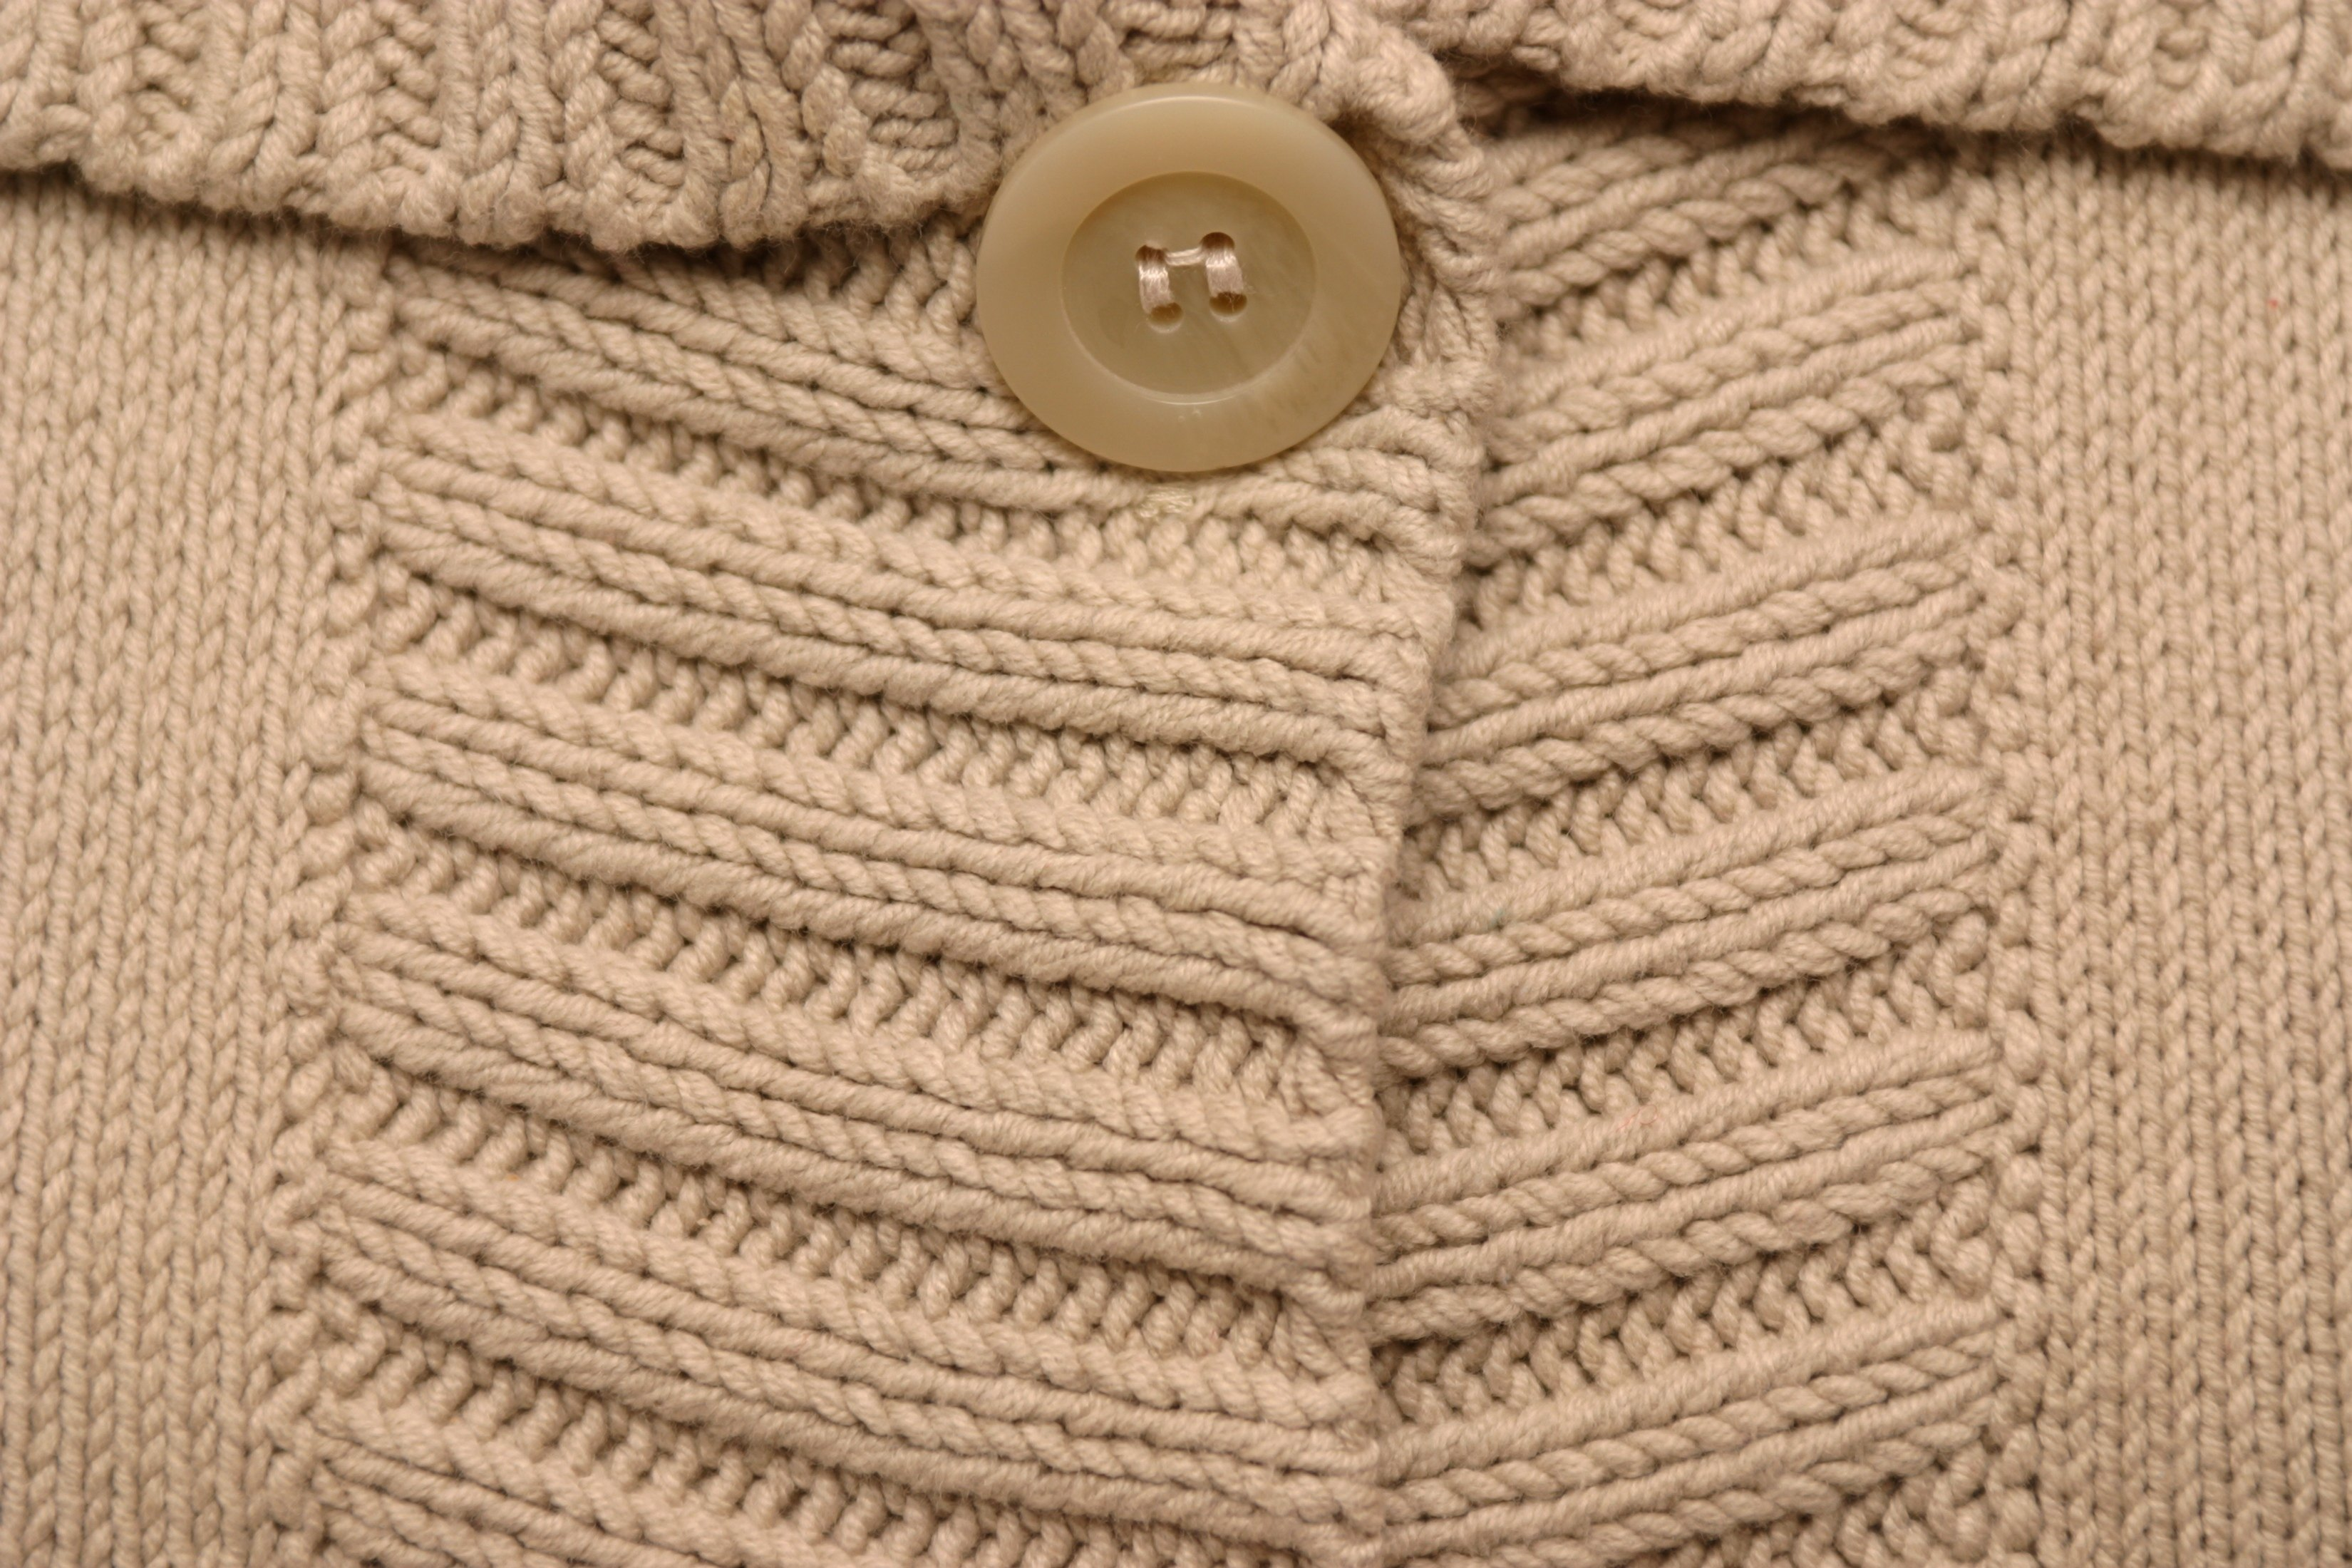 How to Knit a Sweater Collar eHow